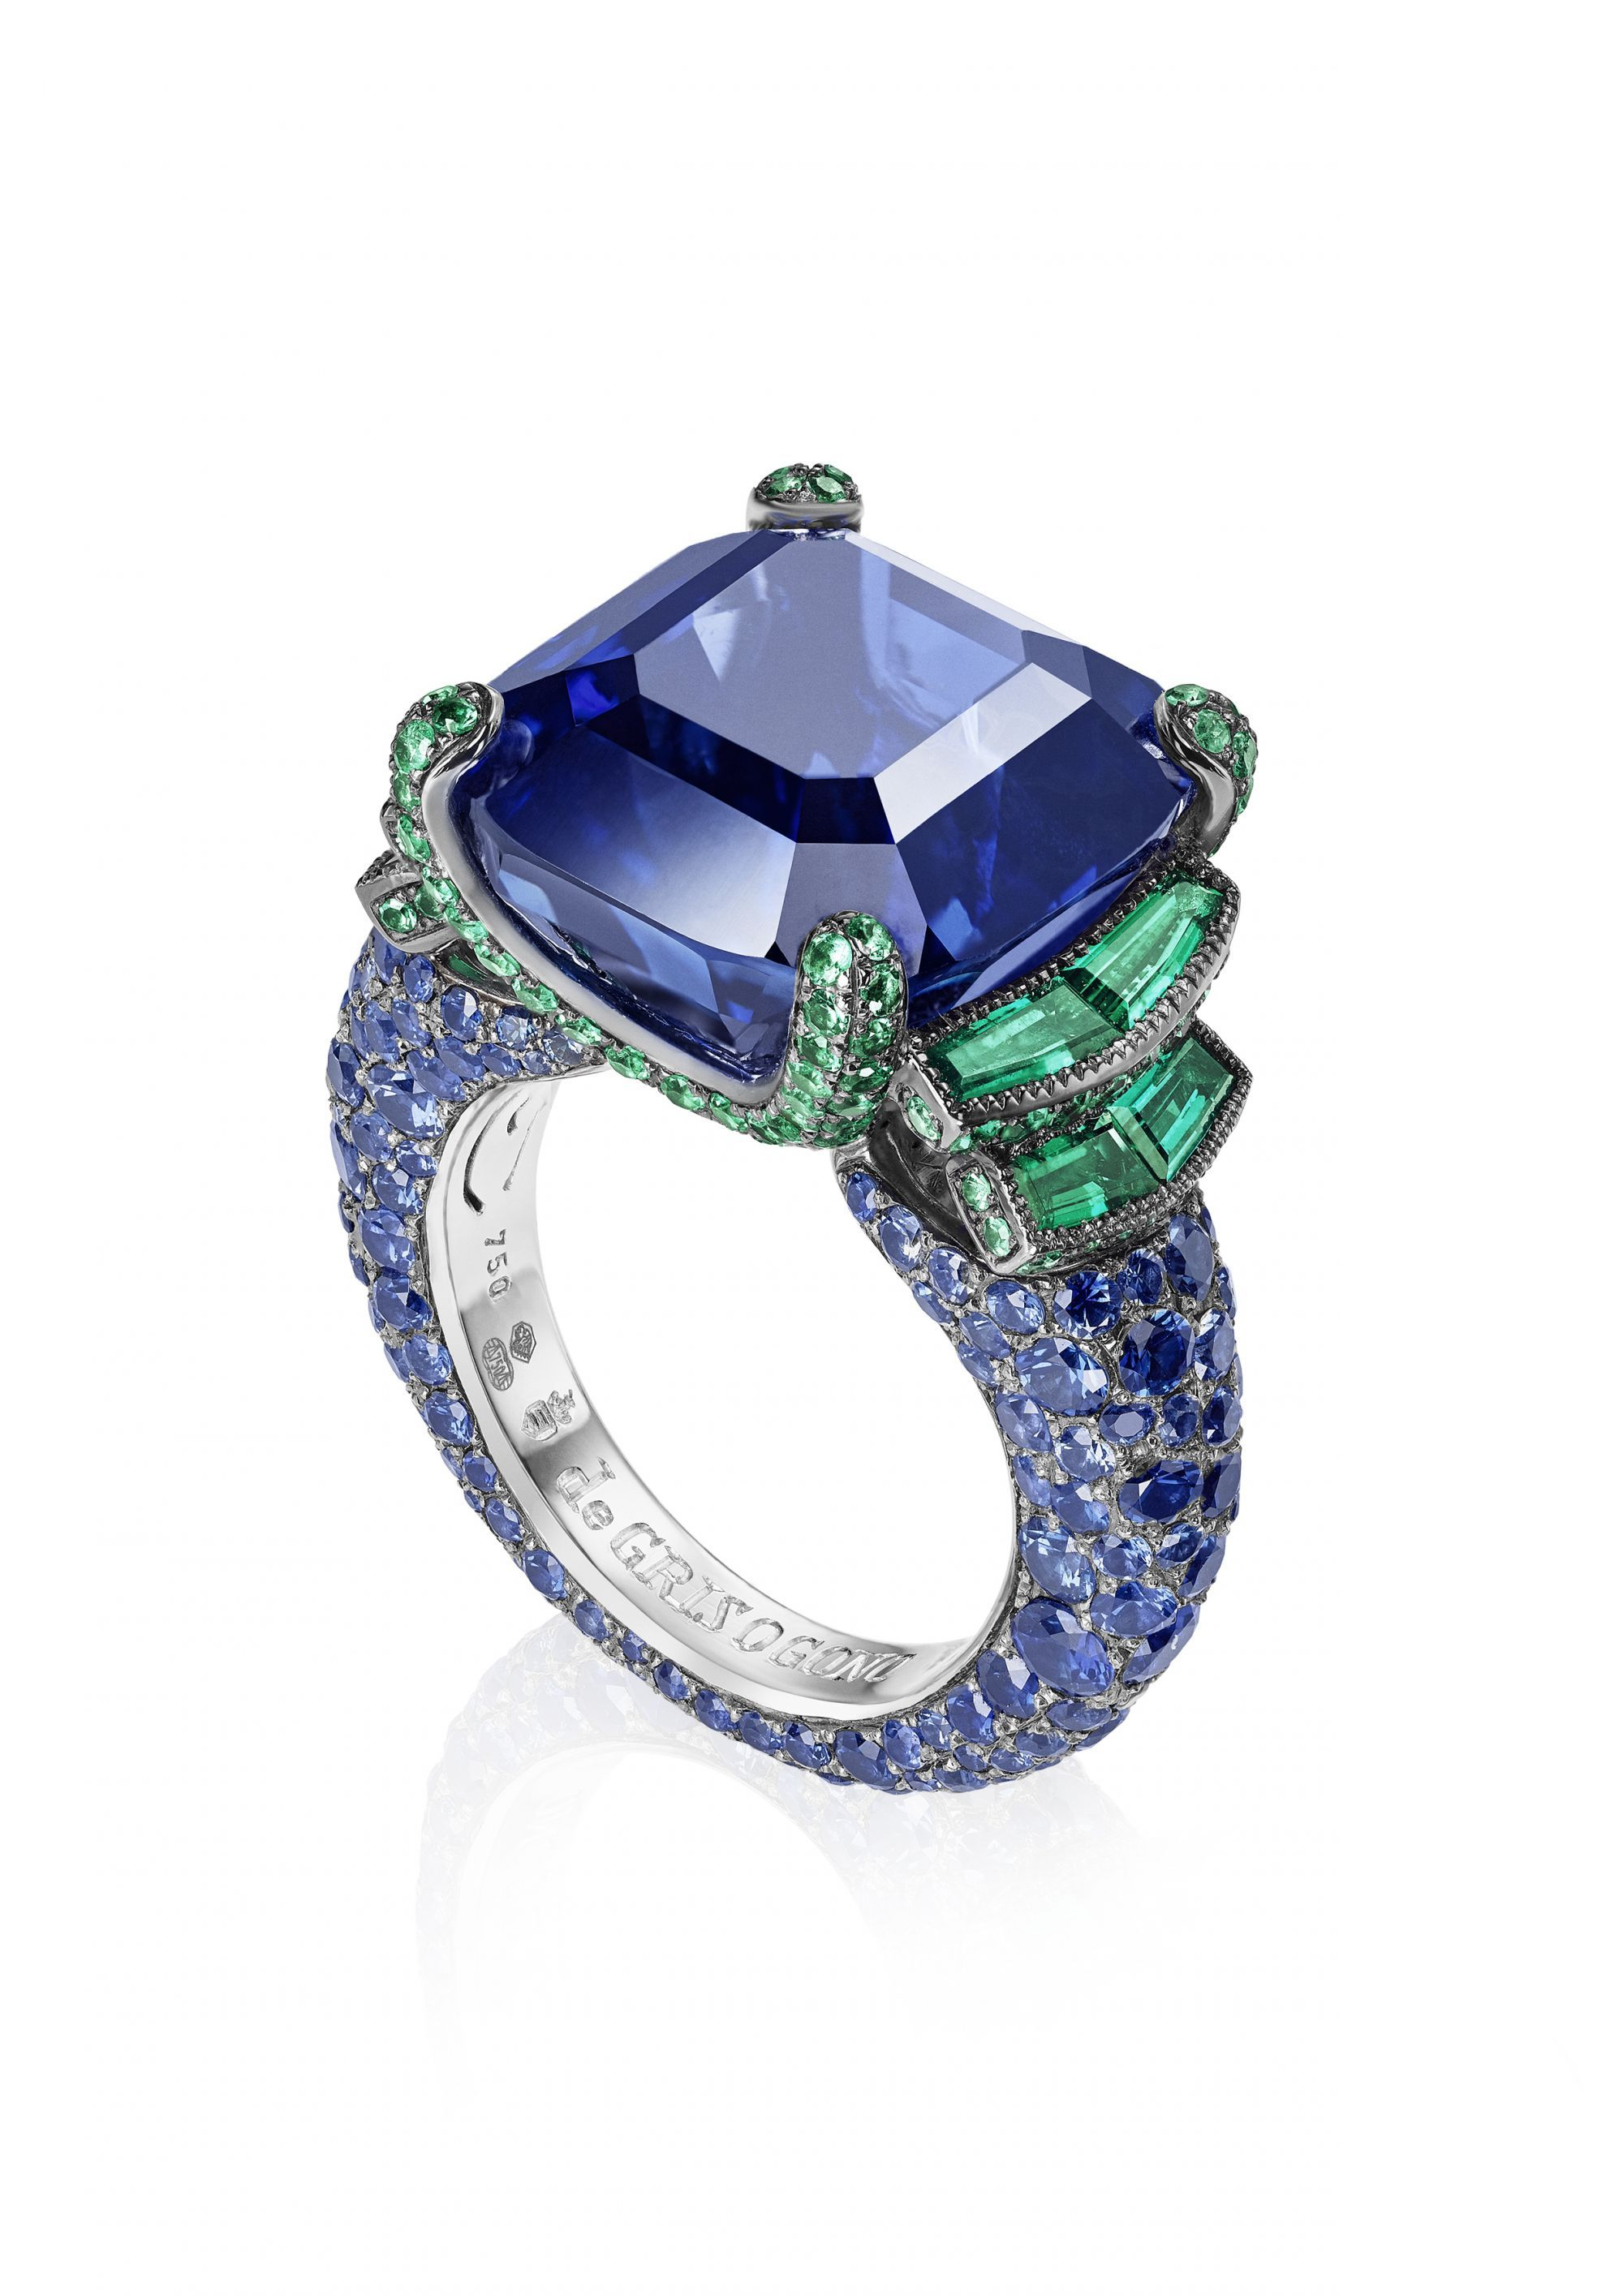 buy ring white costagli and blue spinel paolo an emerald cut products gold